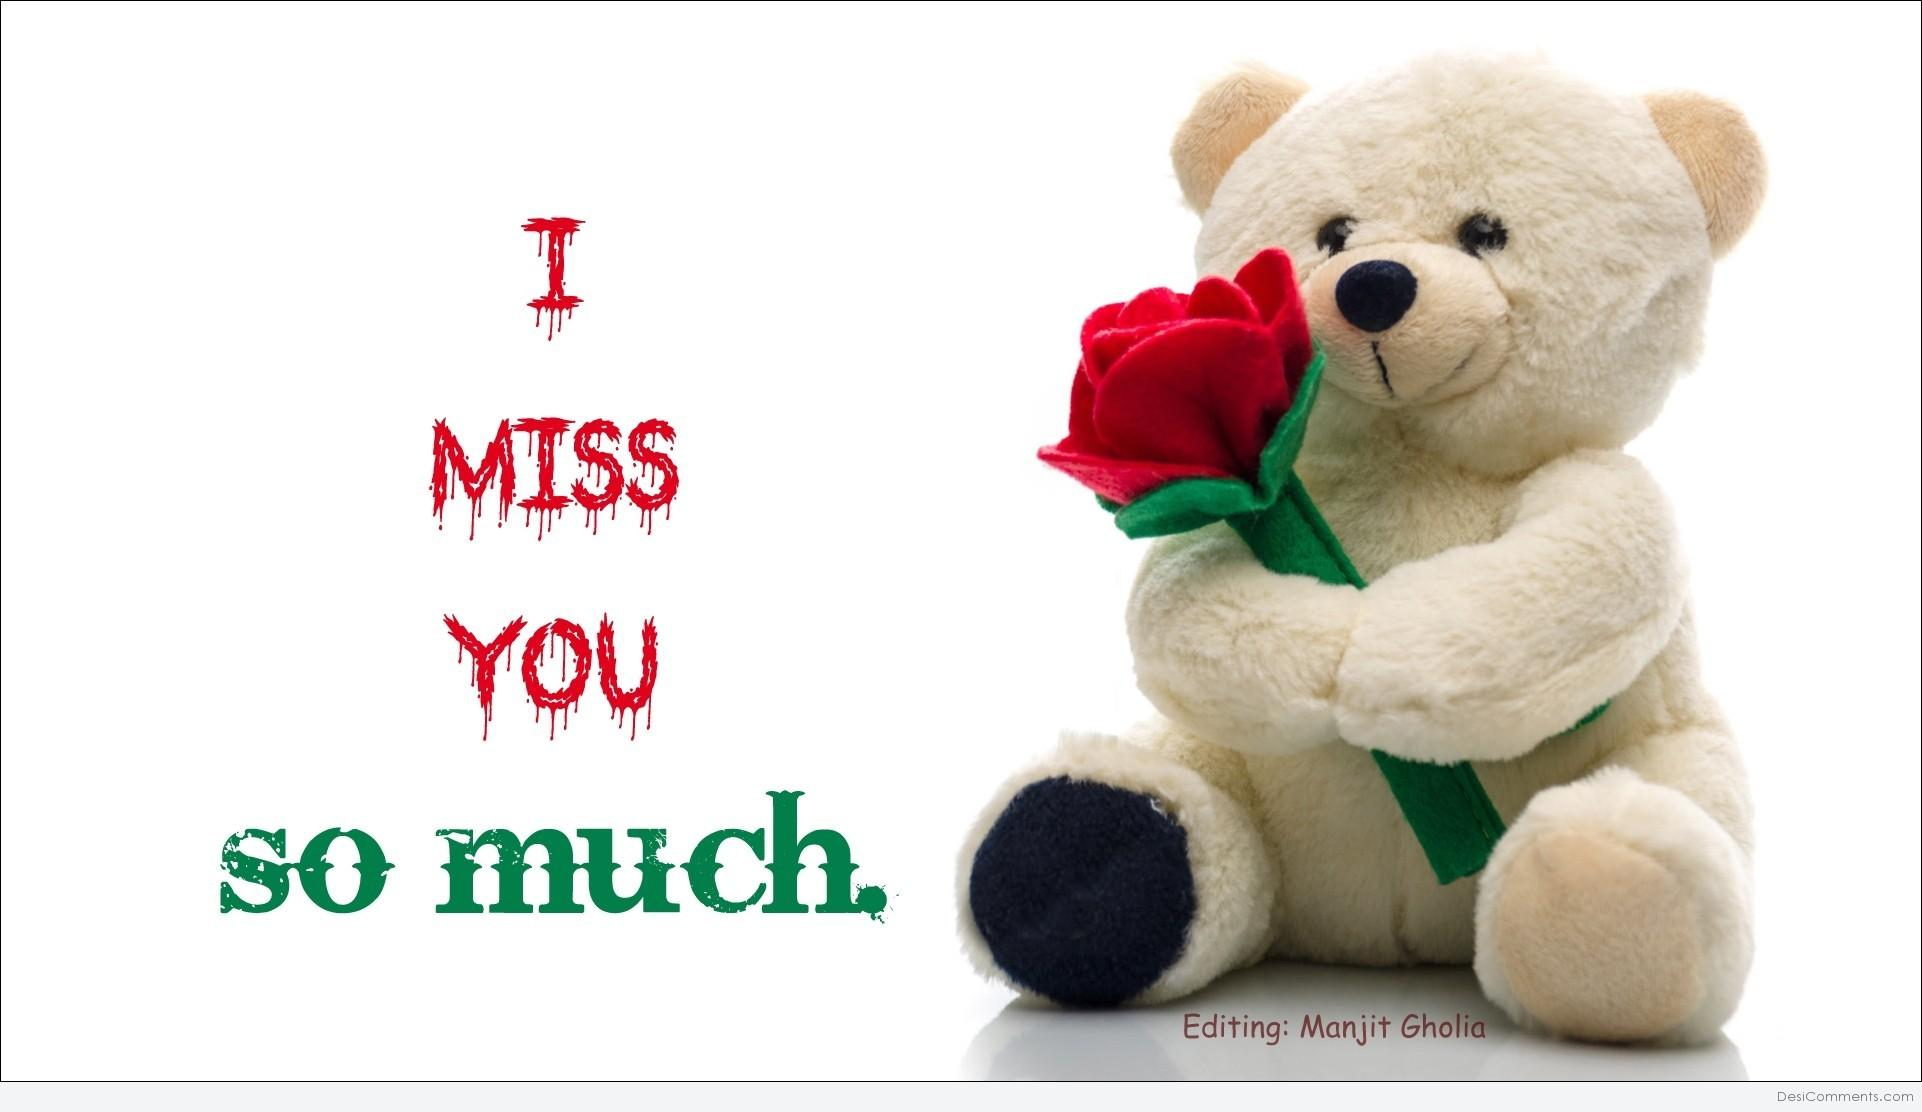 I Miss You So Much Teddy Greeting Image